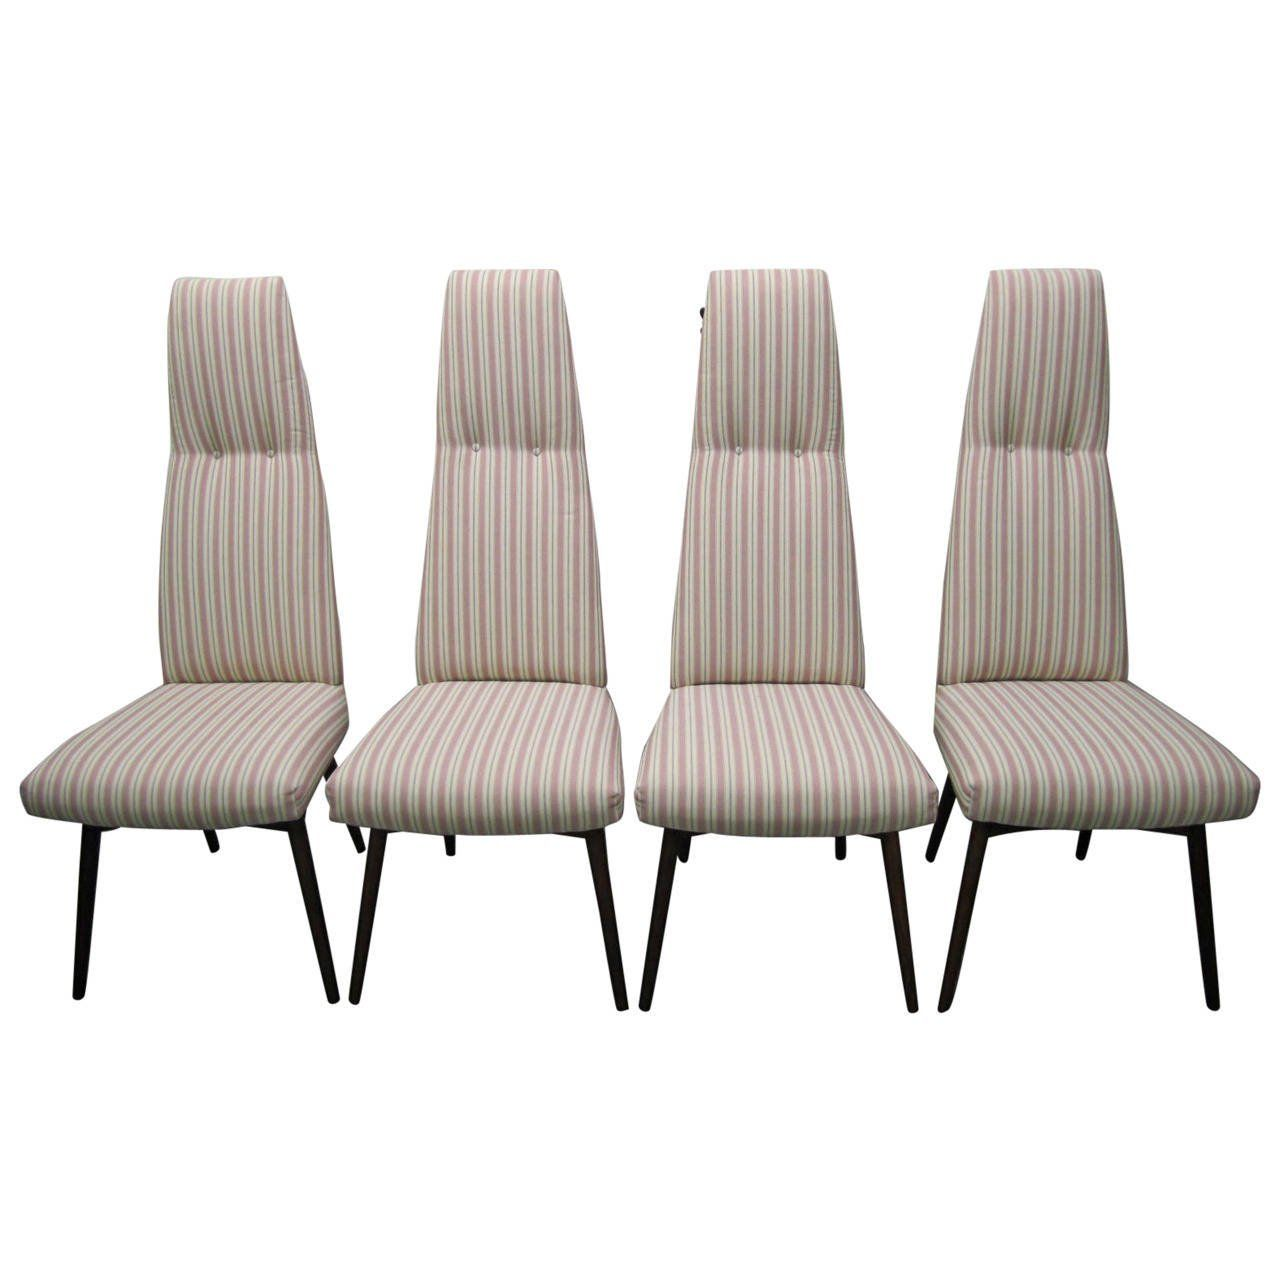 Four Adrian Pearsall High Back Dining Chairs By Craft Associates Mid Century